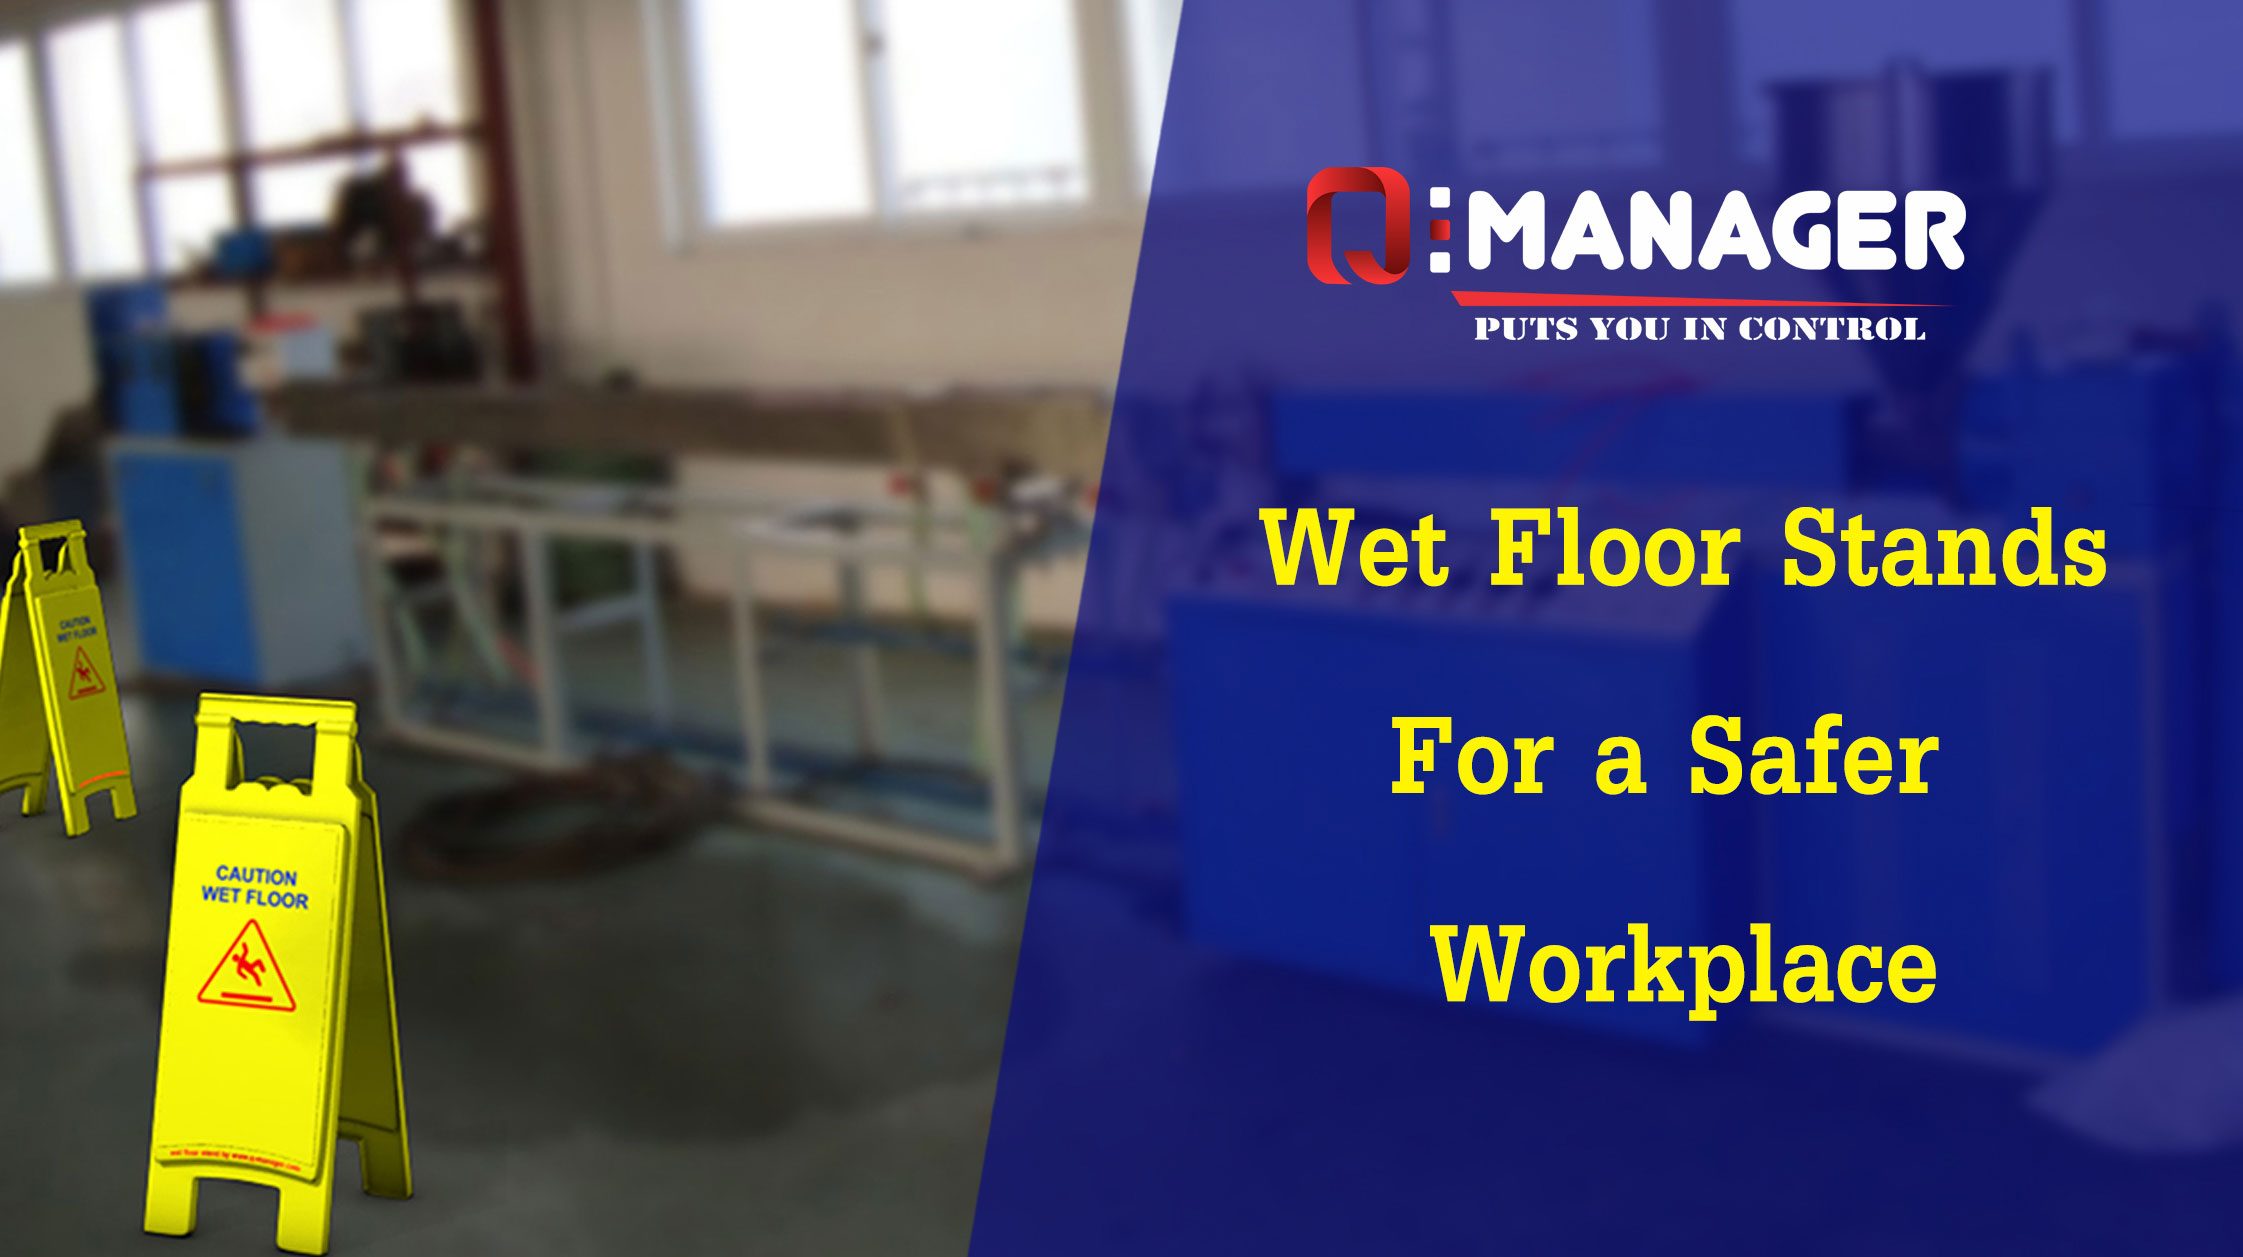 Wet Floor Stands- For a Safer Workplace